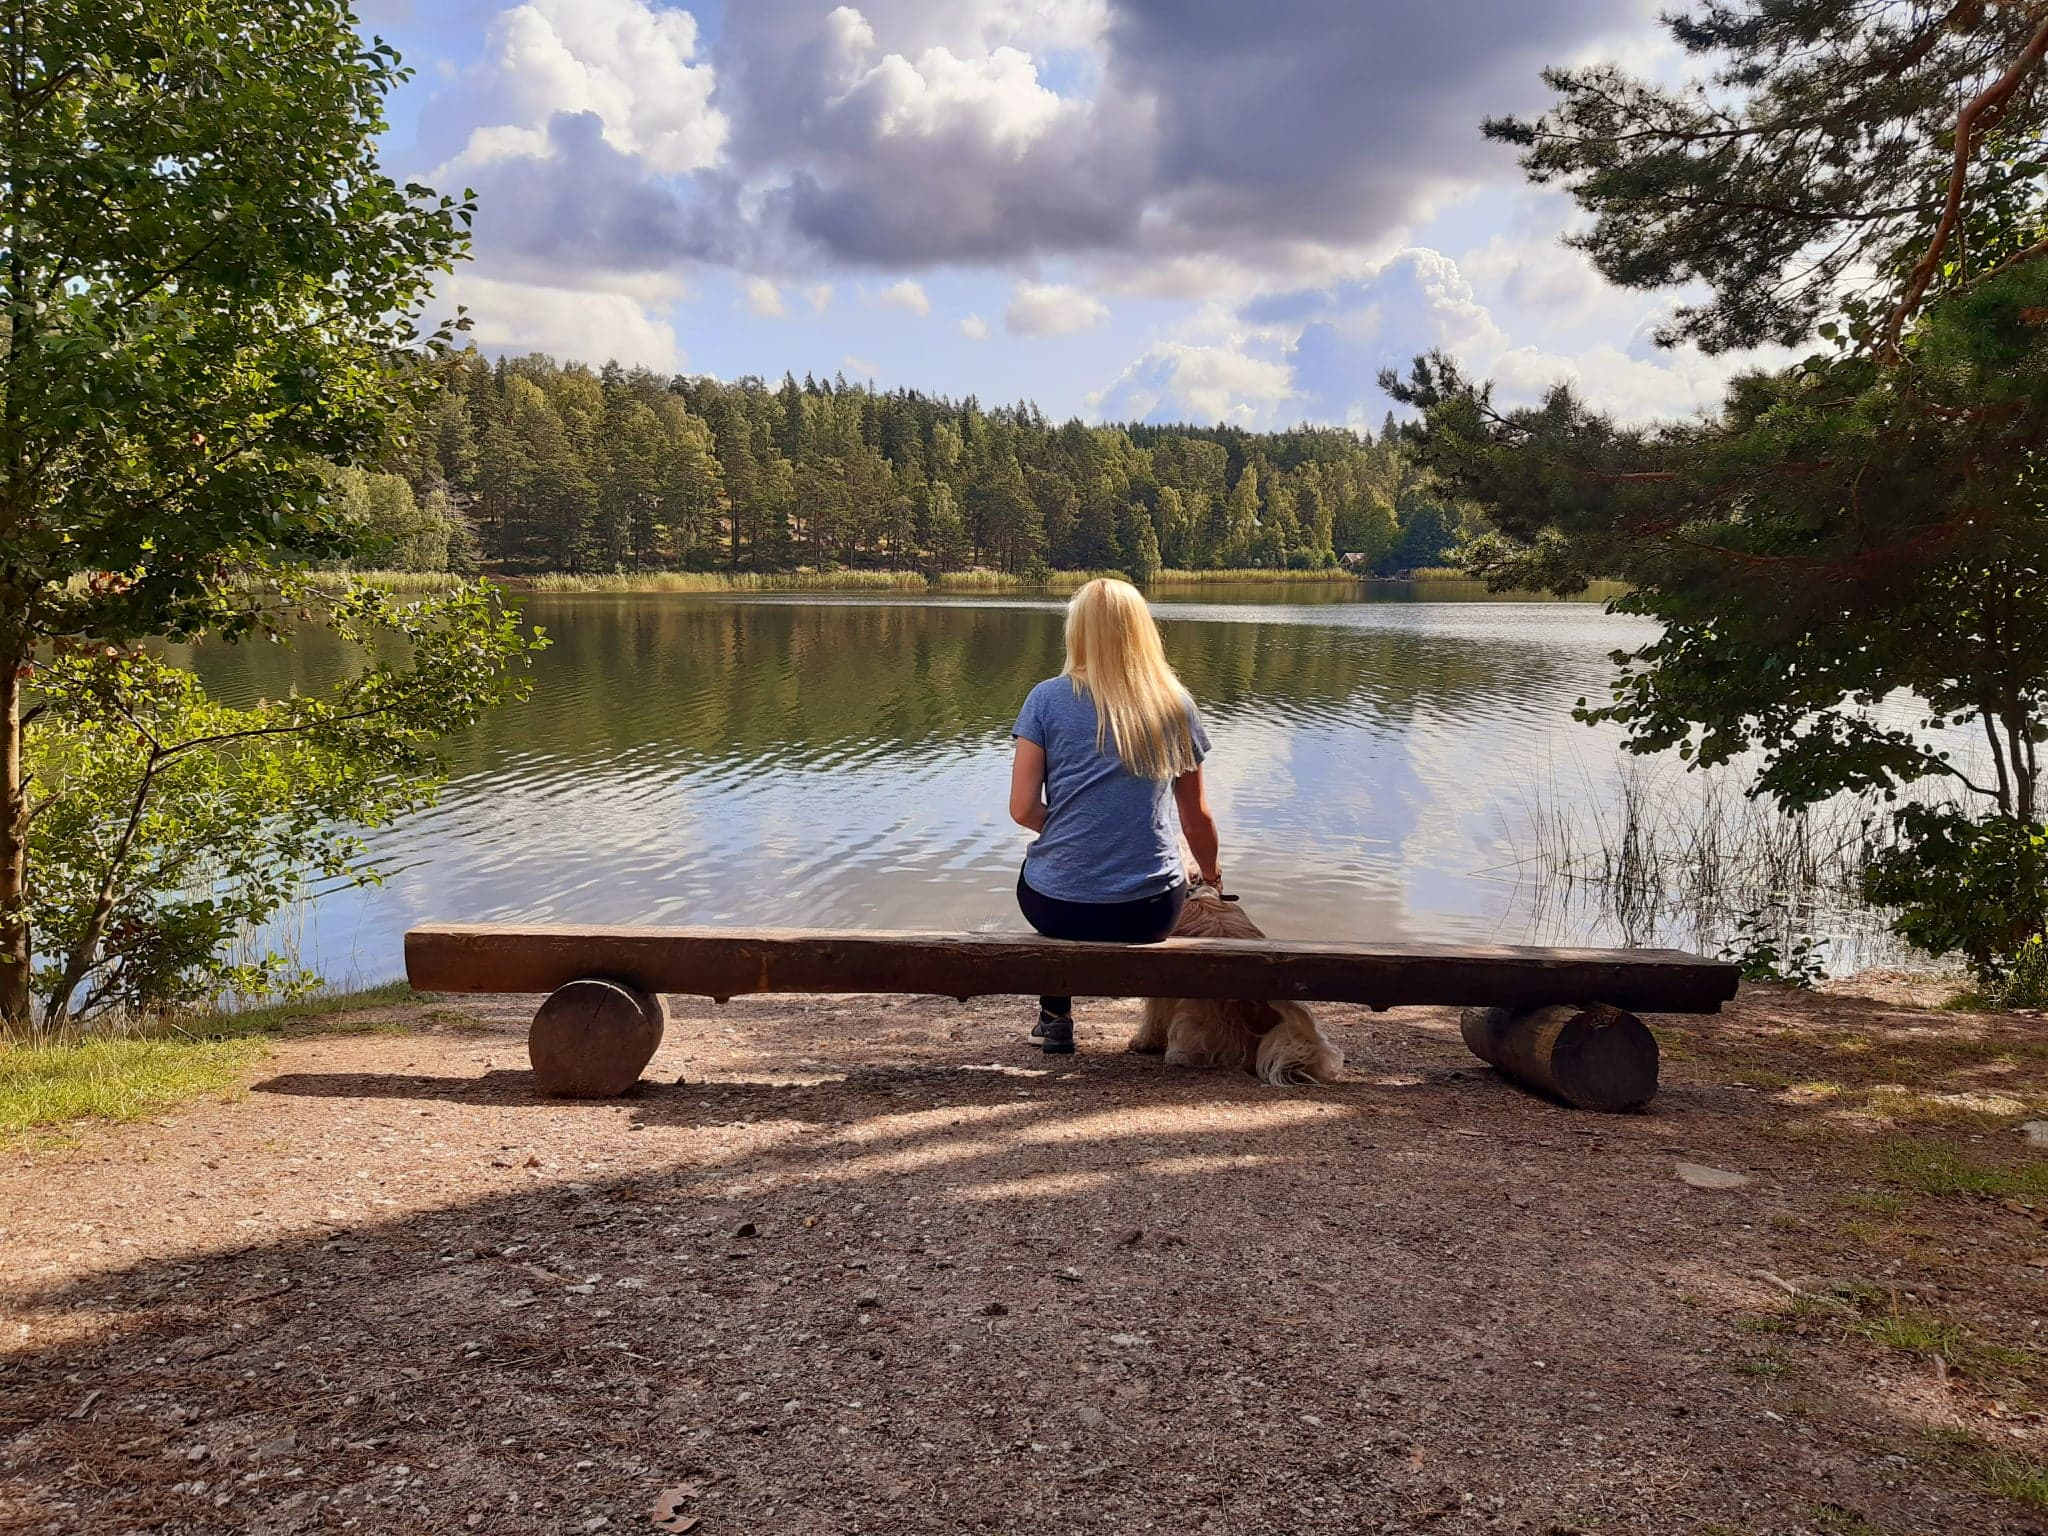 - Time to walk the dog and sit at my favourite spot in Sweden. They can scatter my ashes here when I'm gone… if it's not too illegal.